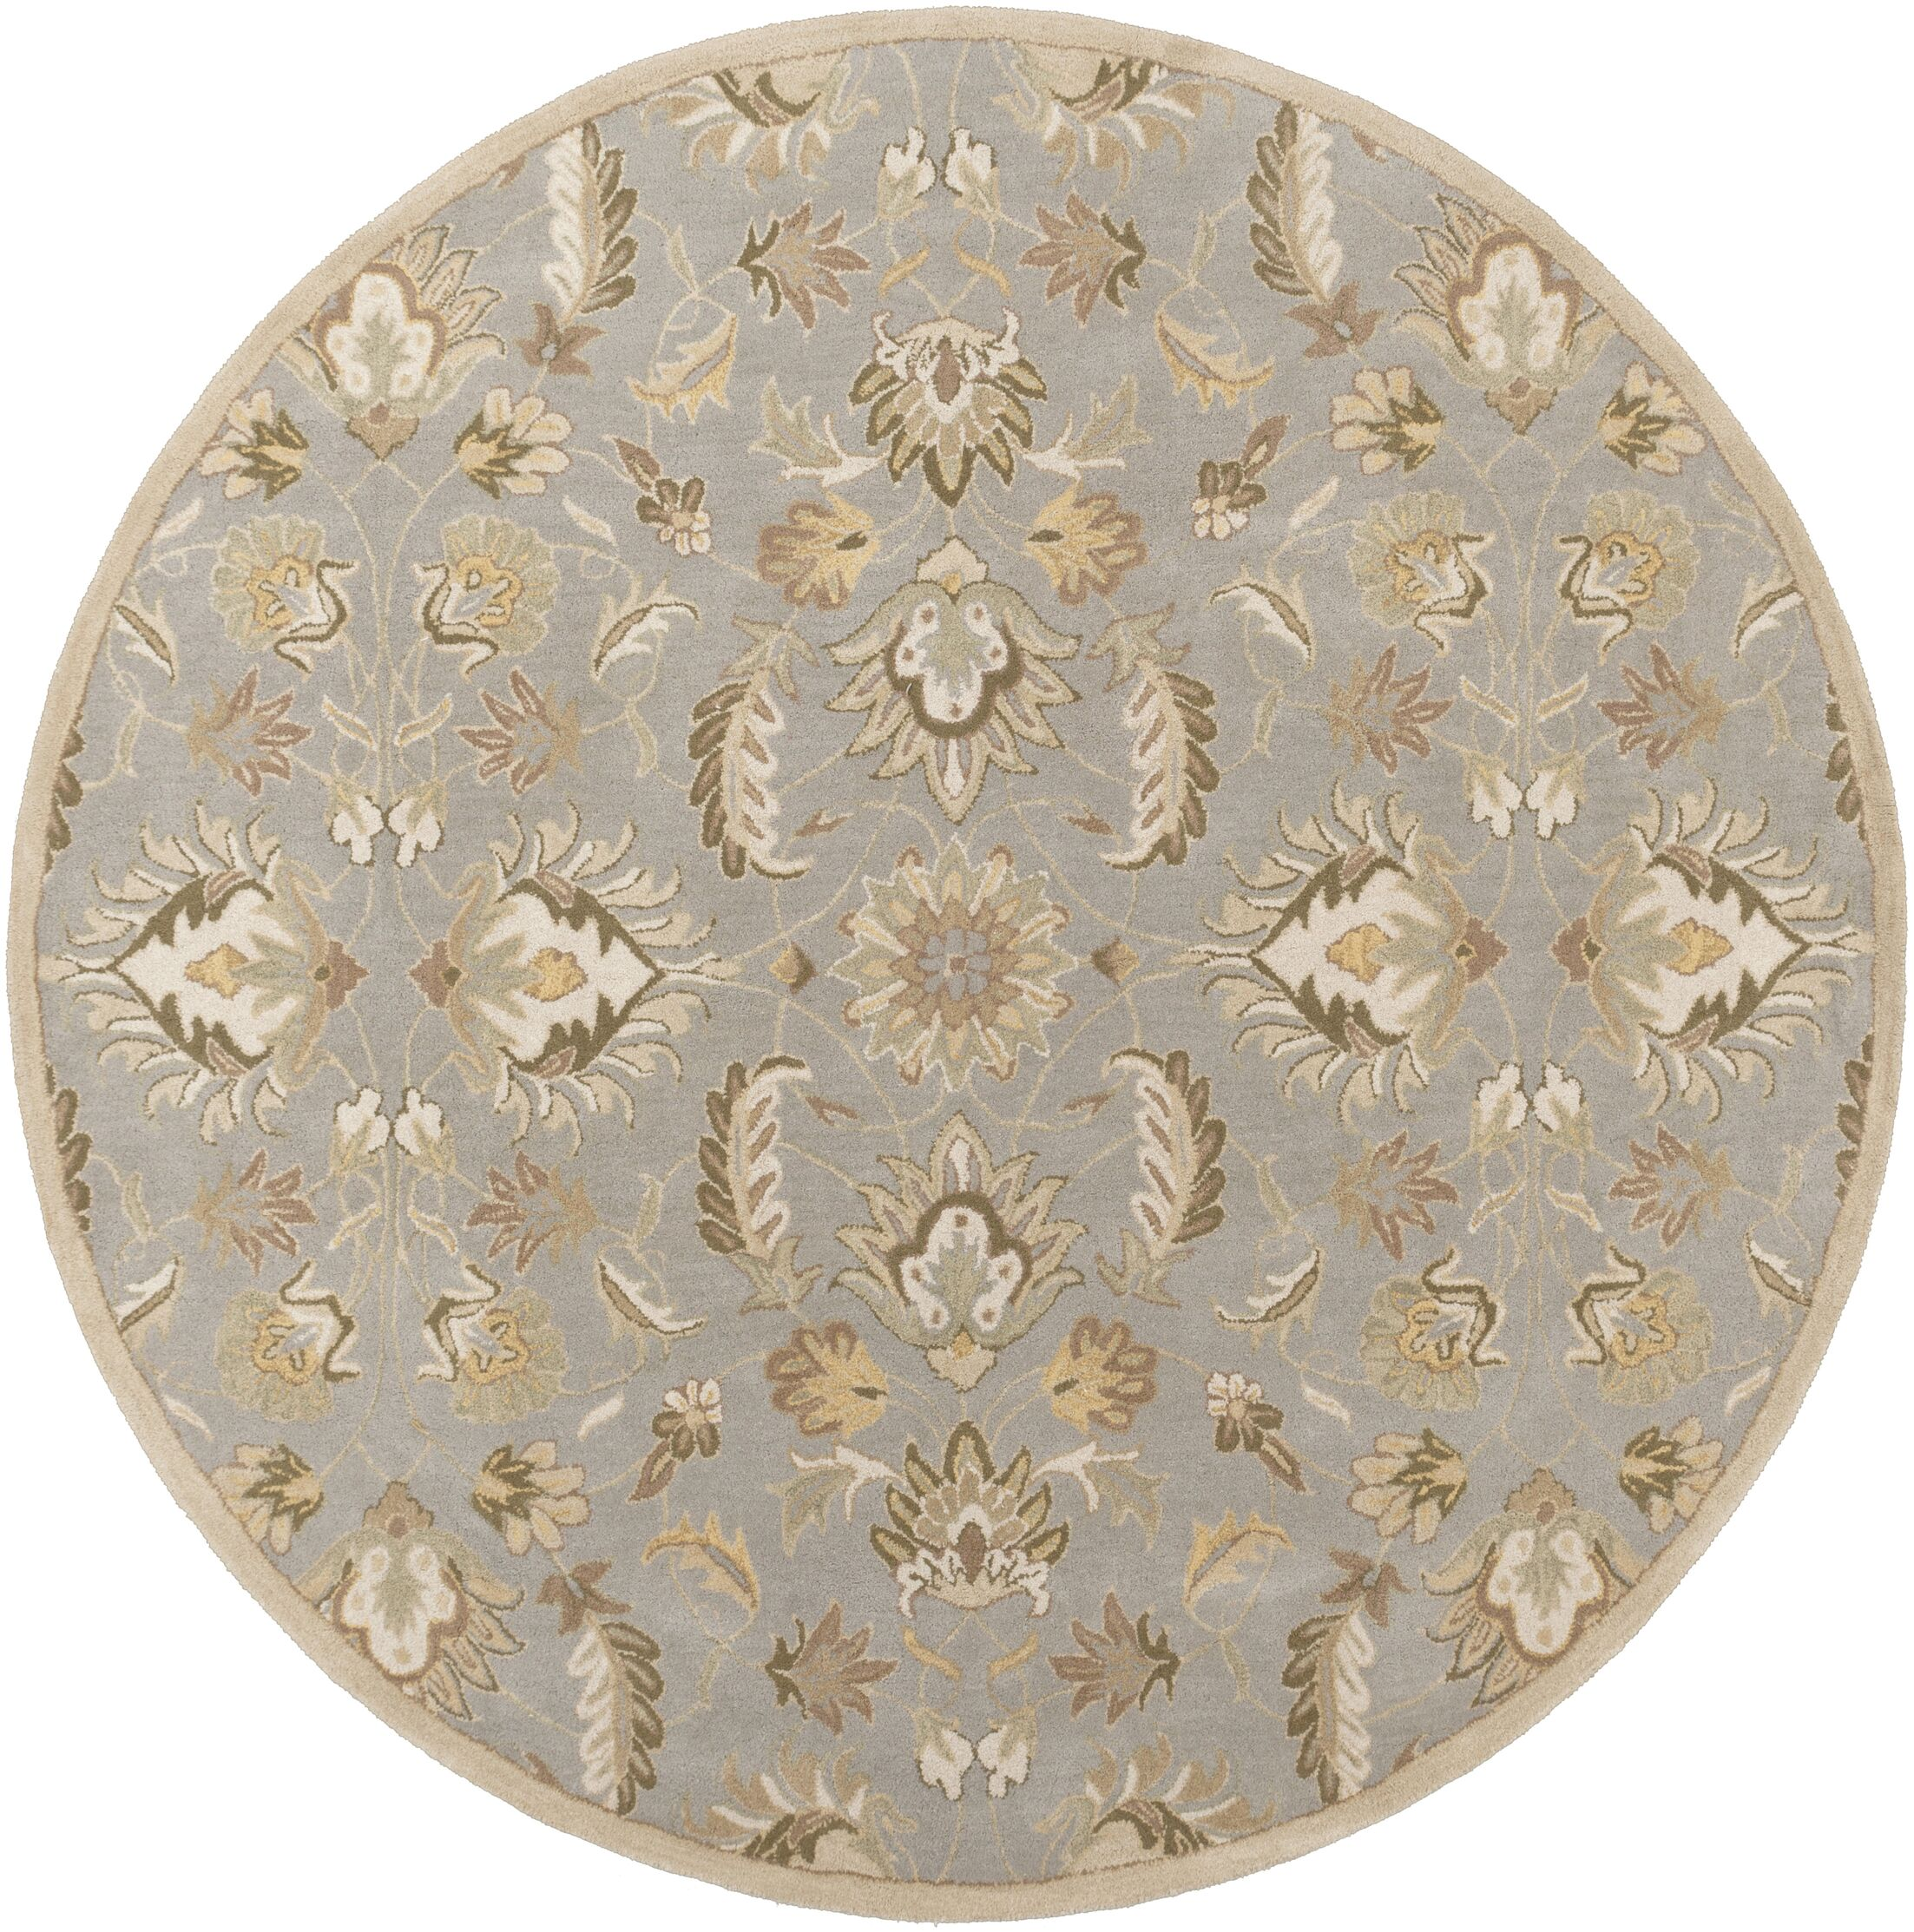 Topaz Hand-Tufte Olive/Taupe Area Rug Rug Size: Rectangle 6' x 9'